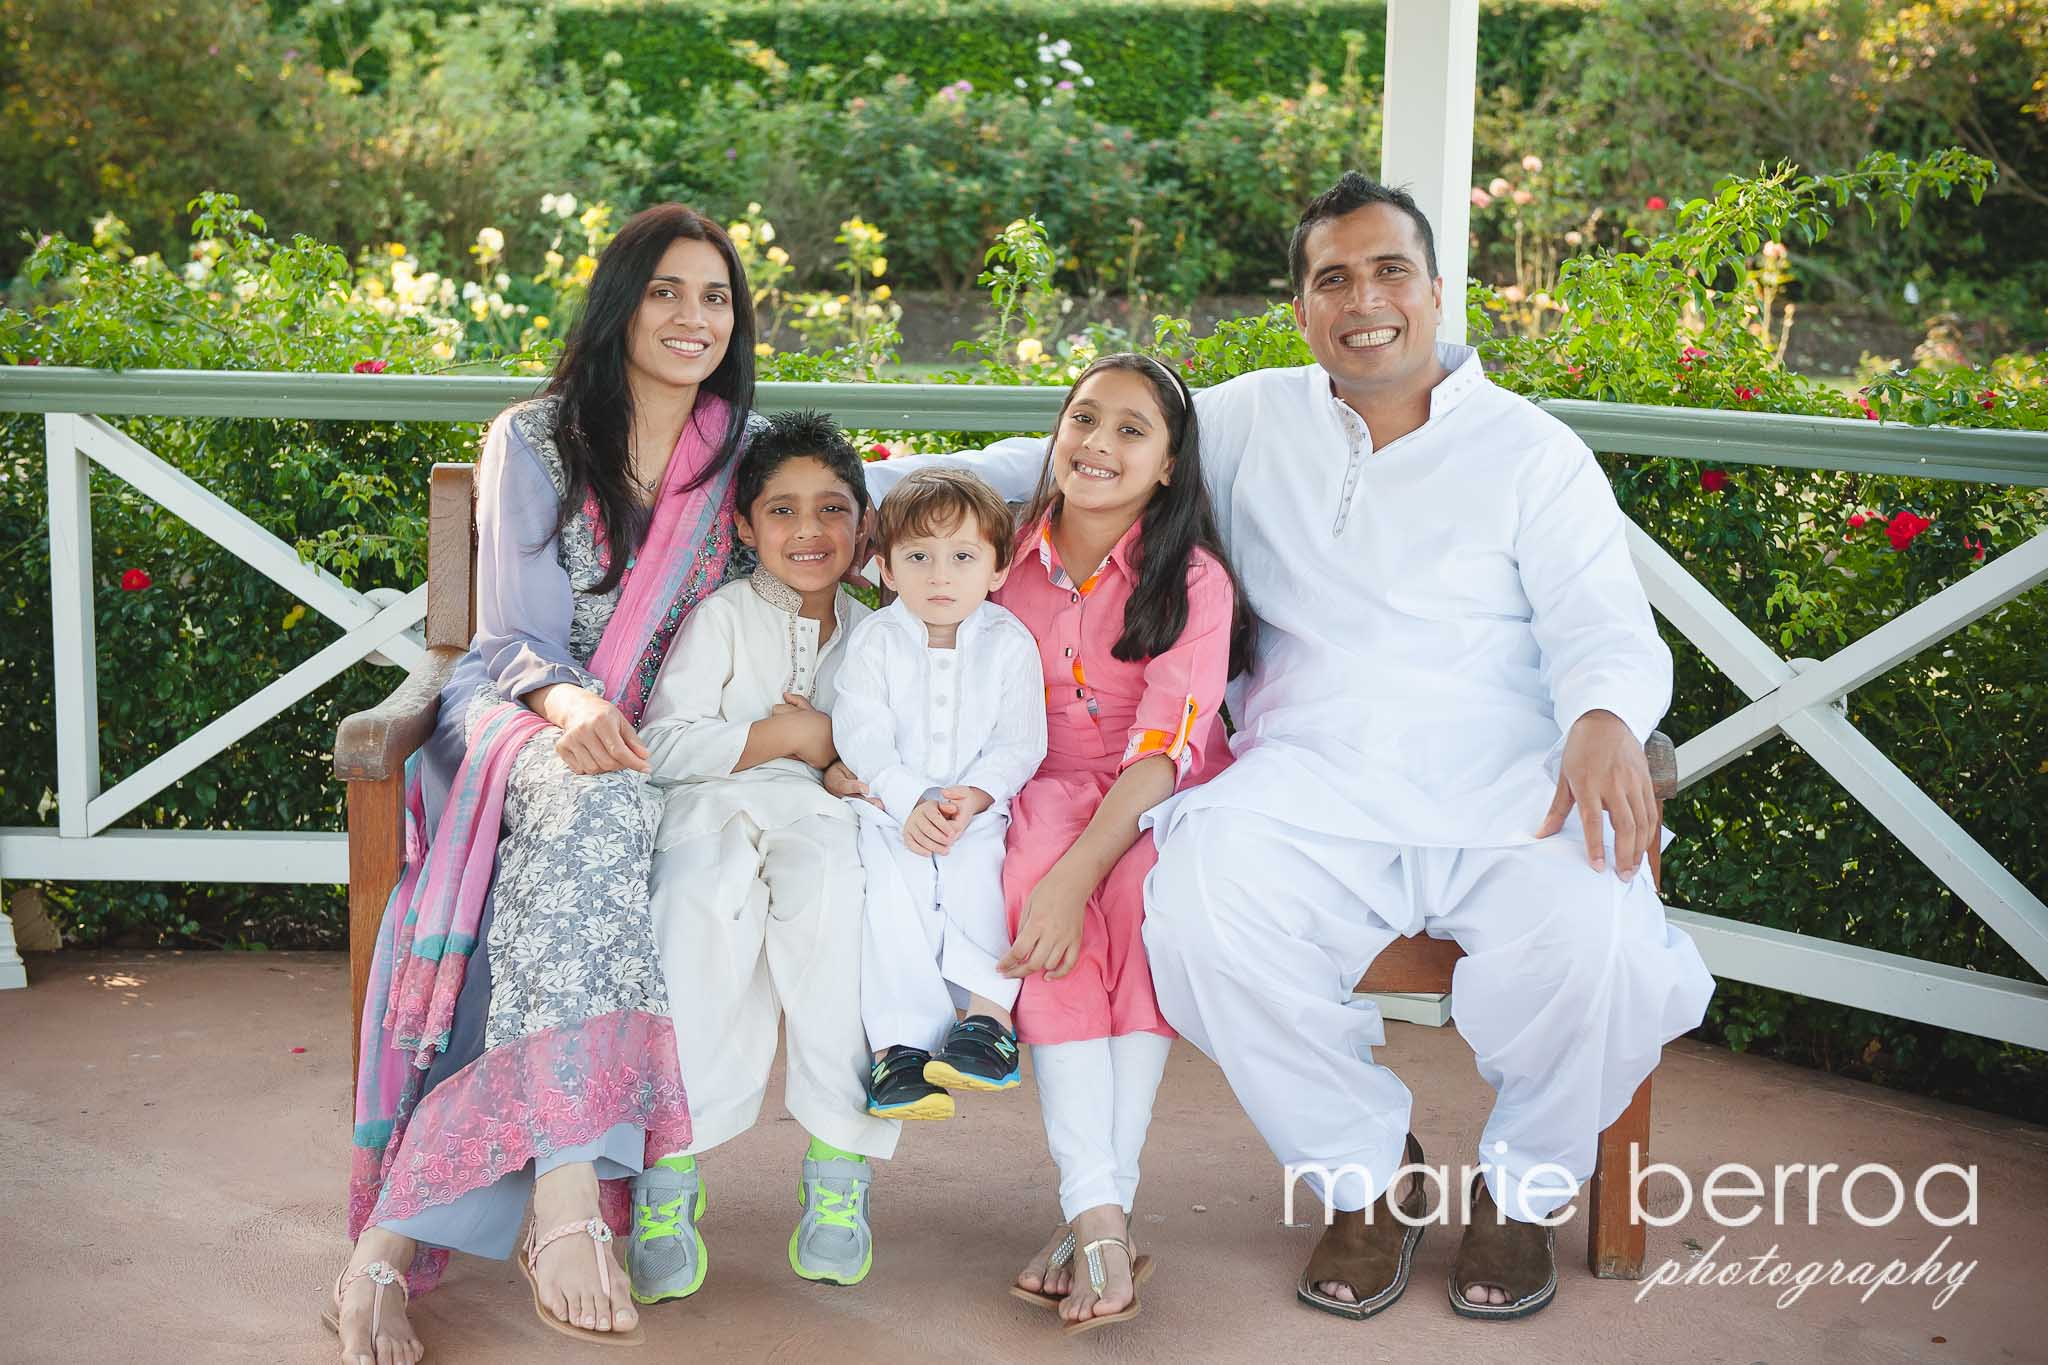 Beautiful family shot amongst lovely gardens.